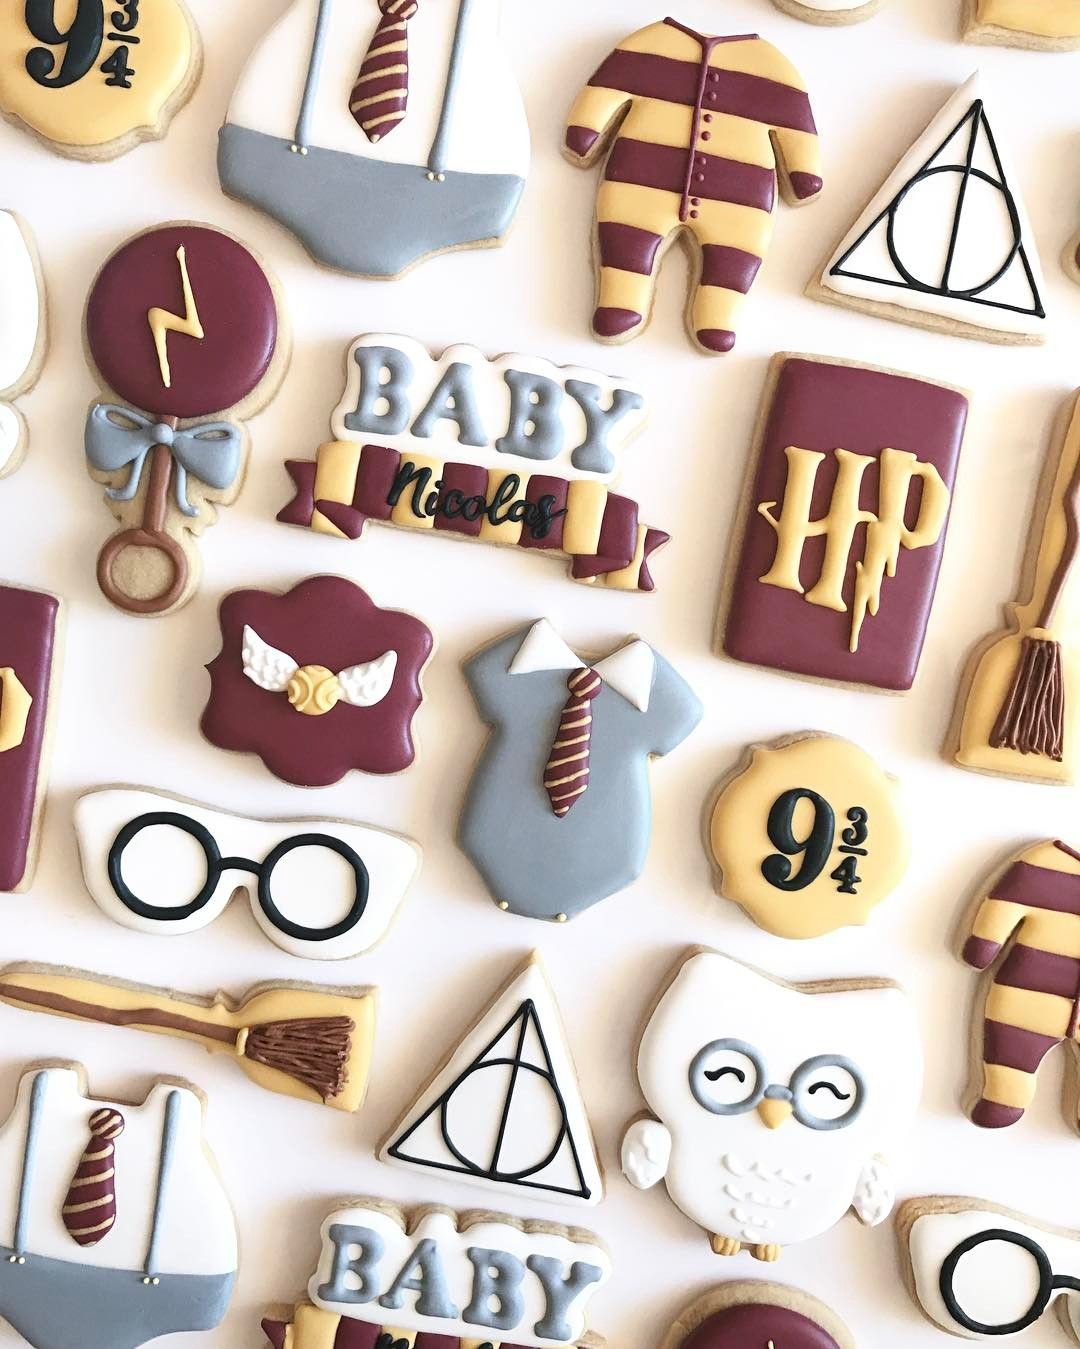 THE BIRTH SQUAD | New Baby | Baby Shower | Cookies | Dessert Station | Gift  Ideas | Harry Potter Theme | Birthday | Sweet Treats | Cookies By Nina  Marie ...